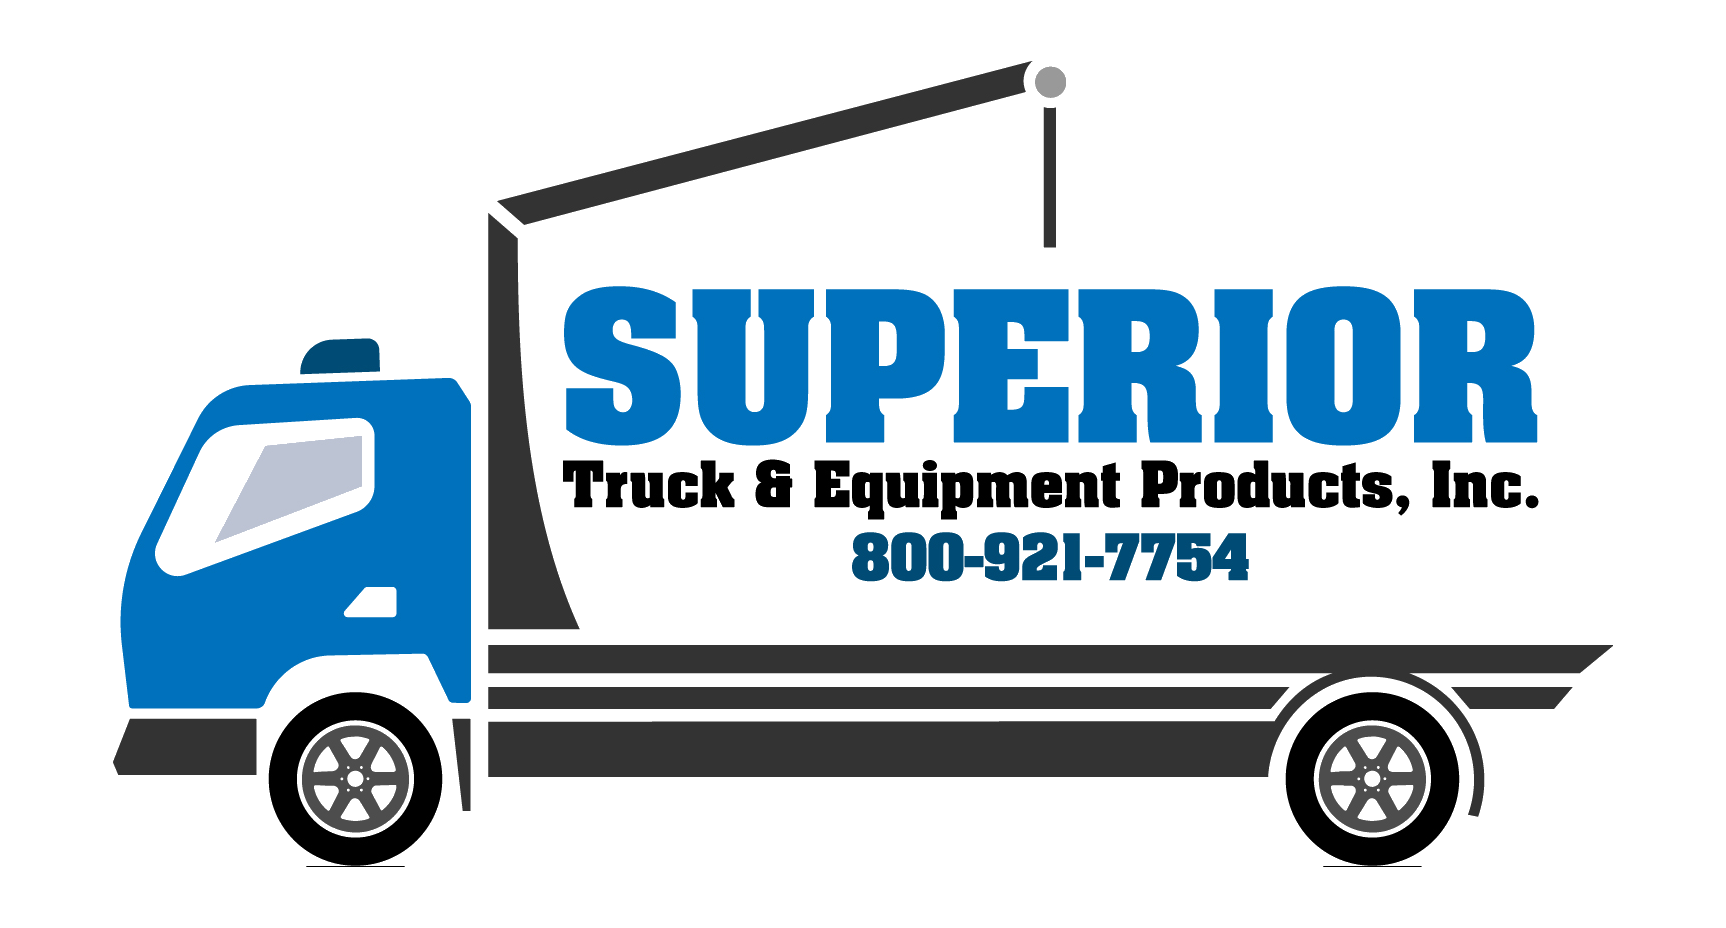 Superior Truck & Equipment Products, Inc. logo